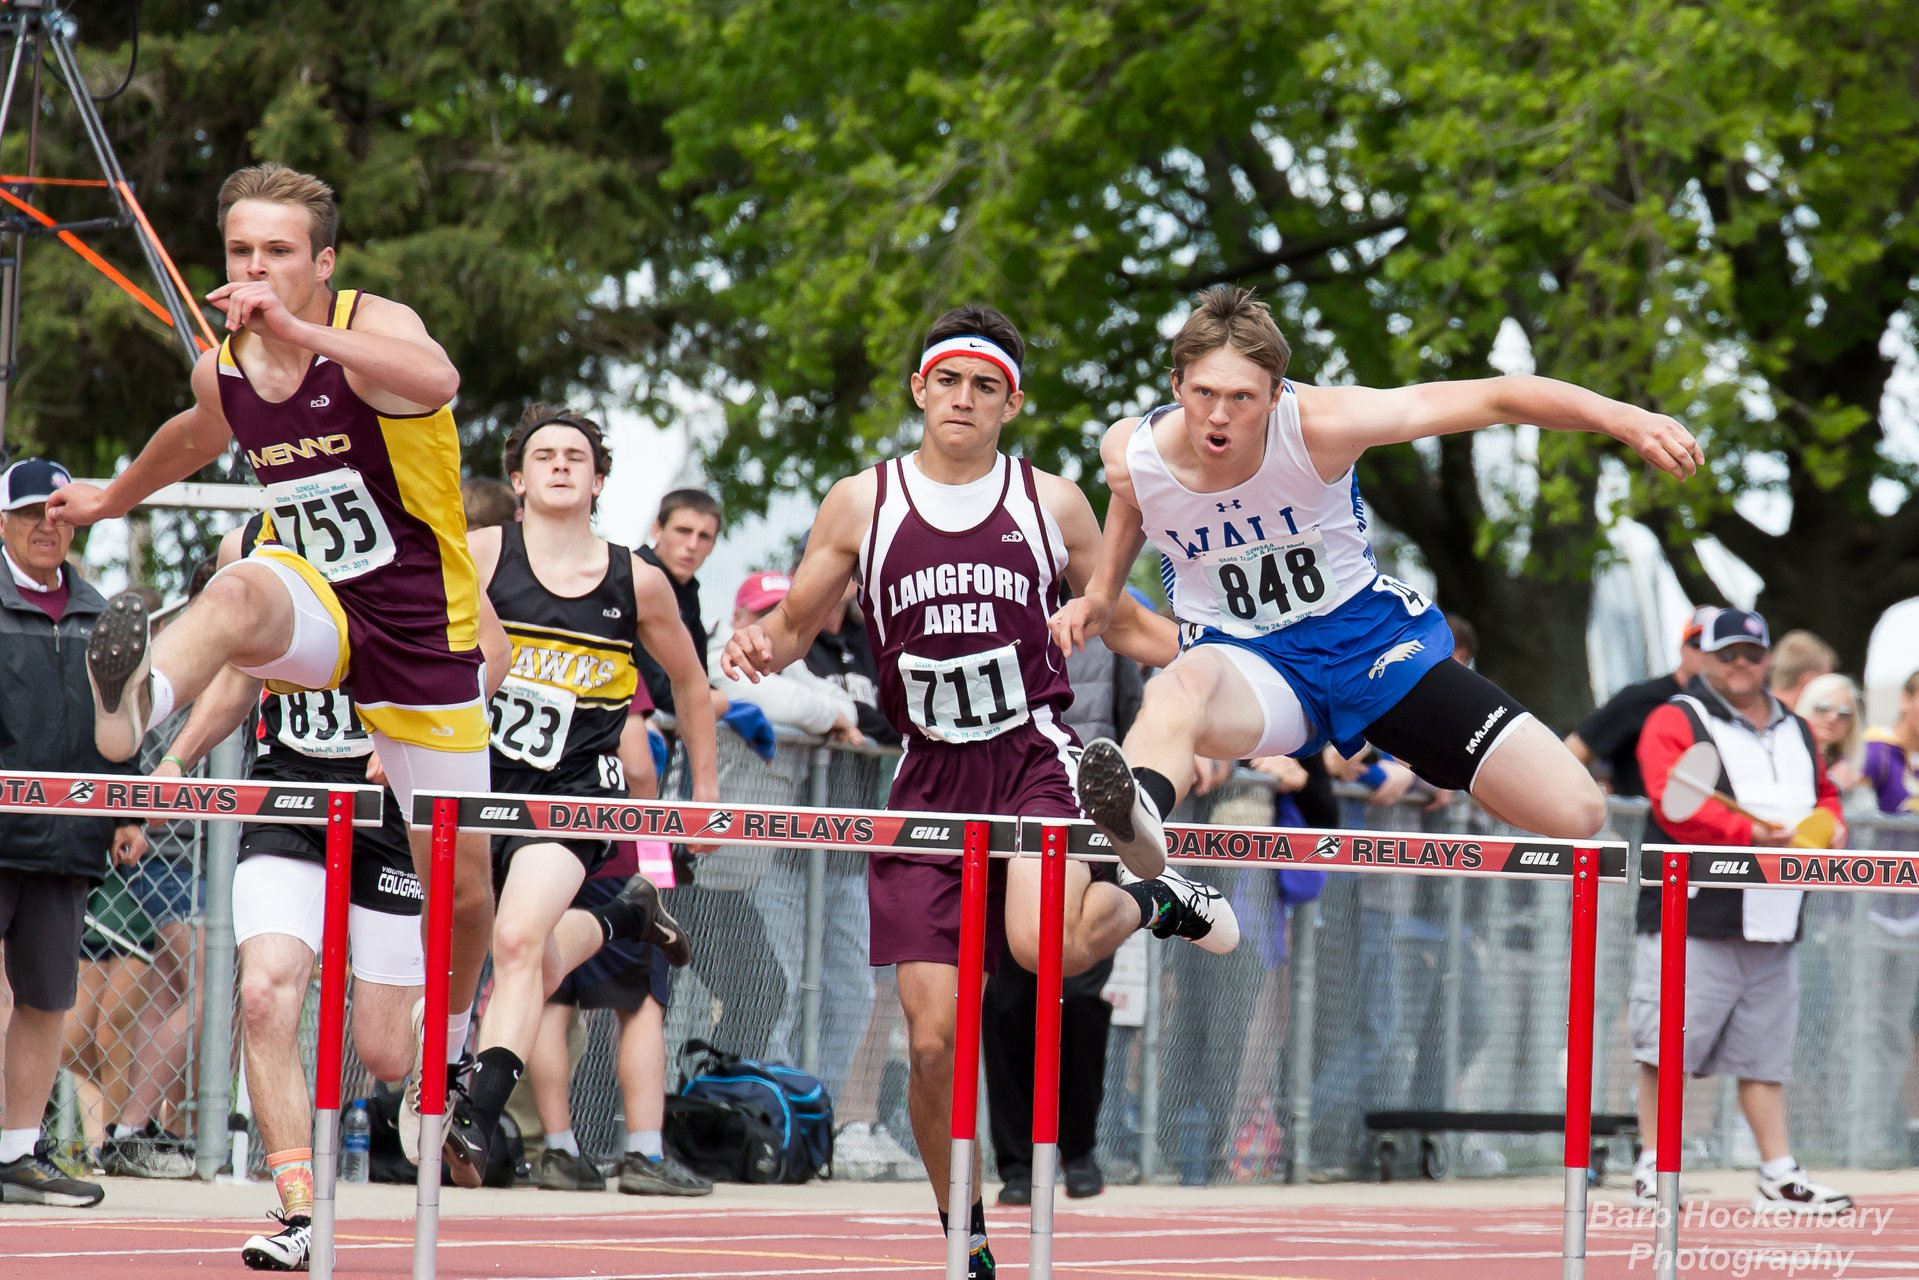 - The Wall Eagles under the direction of Karol Patterson were superb last season, finishing 2nd in Class B, trailing only Viborg-Hurley.Law won two state titles:110 hurdles: 14.94 (first time under 15-flat)300 hurdles: 40.56Law was hampered with a leg injury through much of the track season, so, next season, when he's healthy, this guy is going to go BIG!